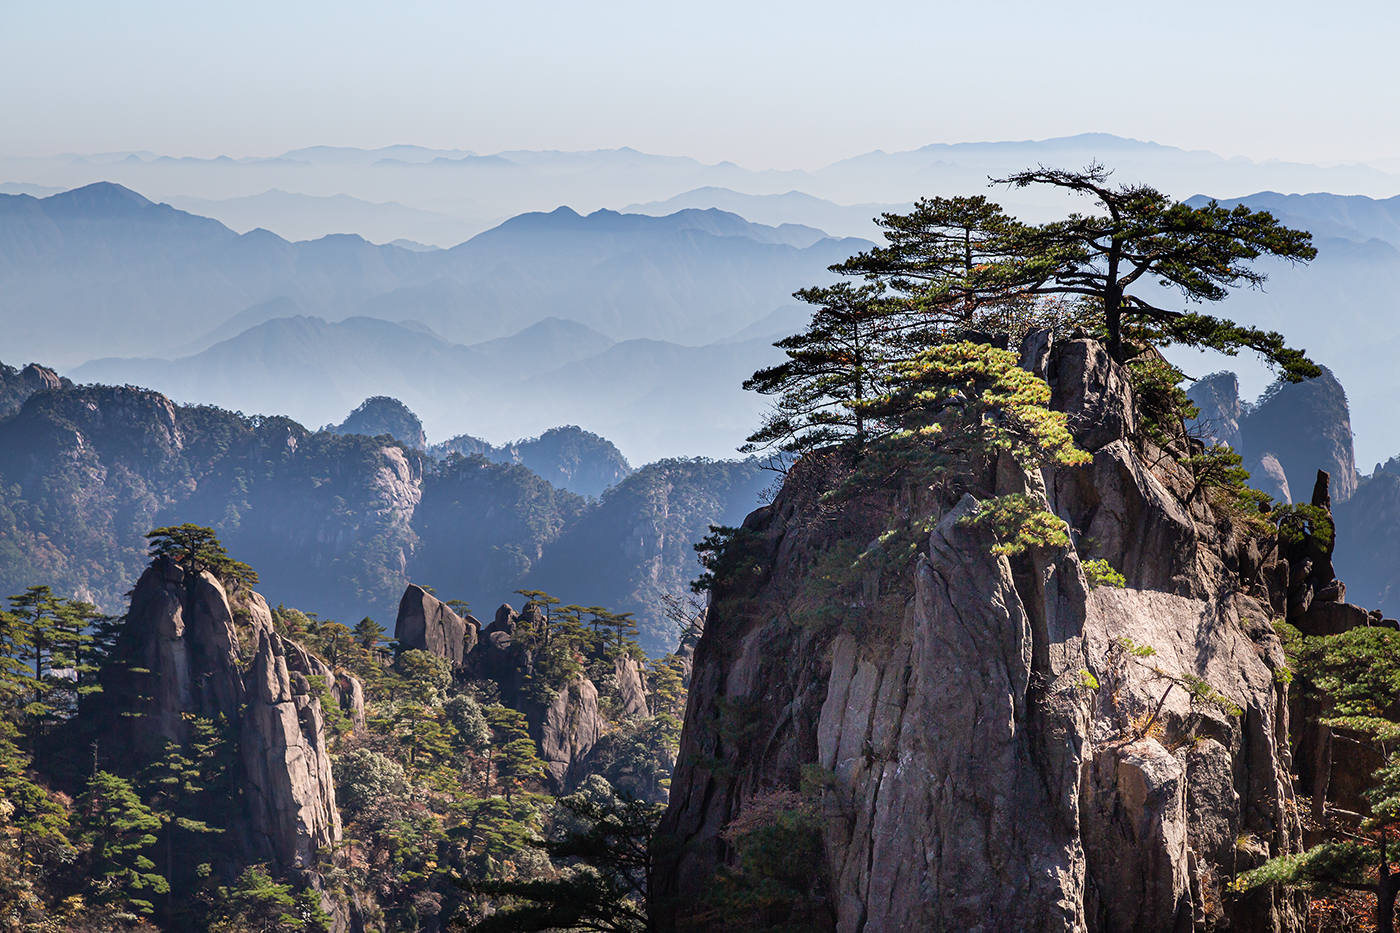 Late Morning in Huangshan